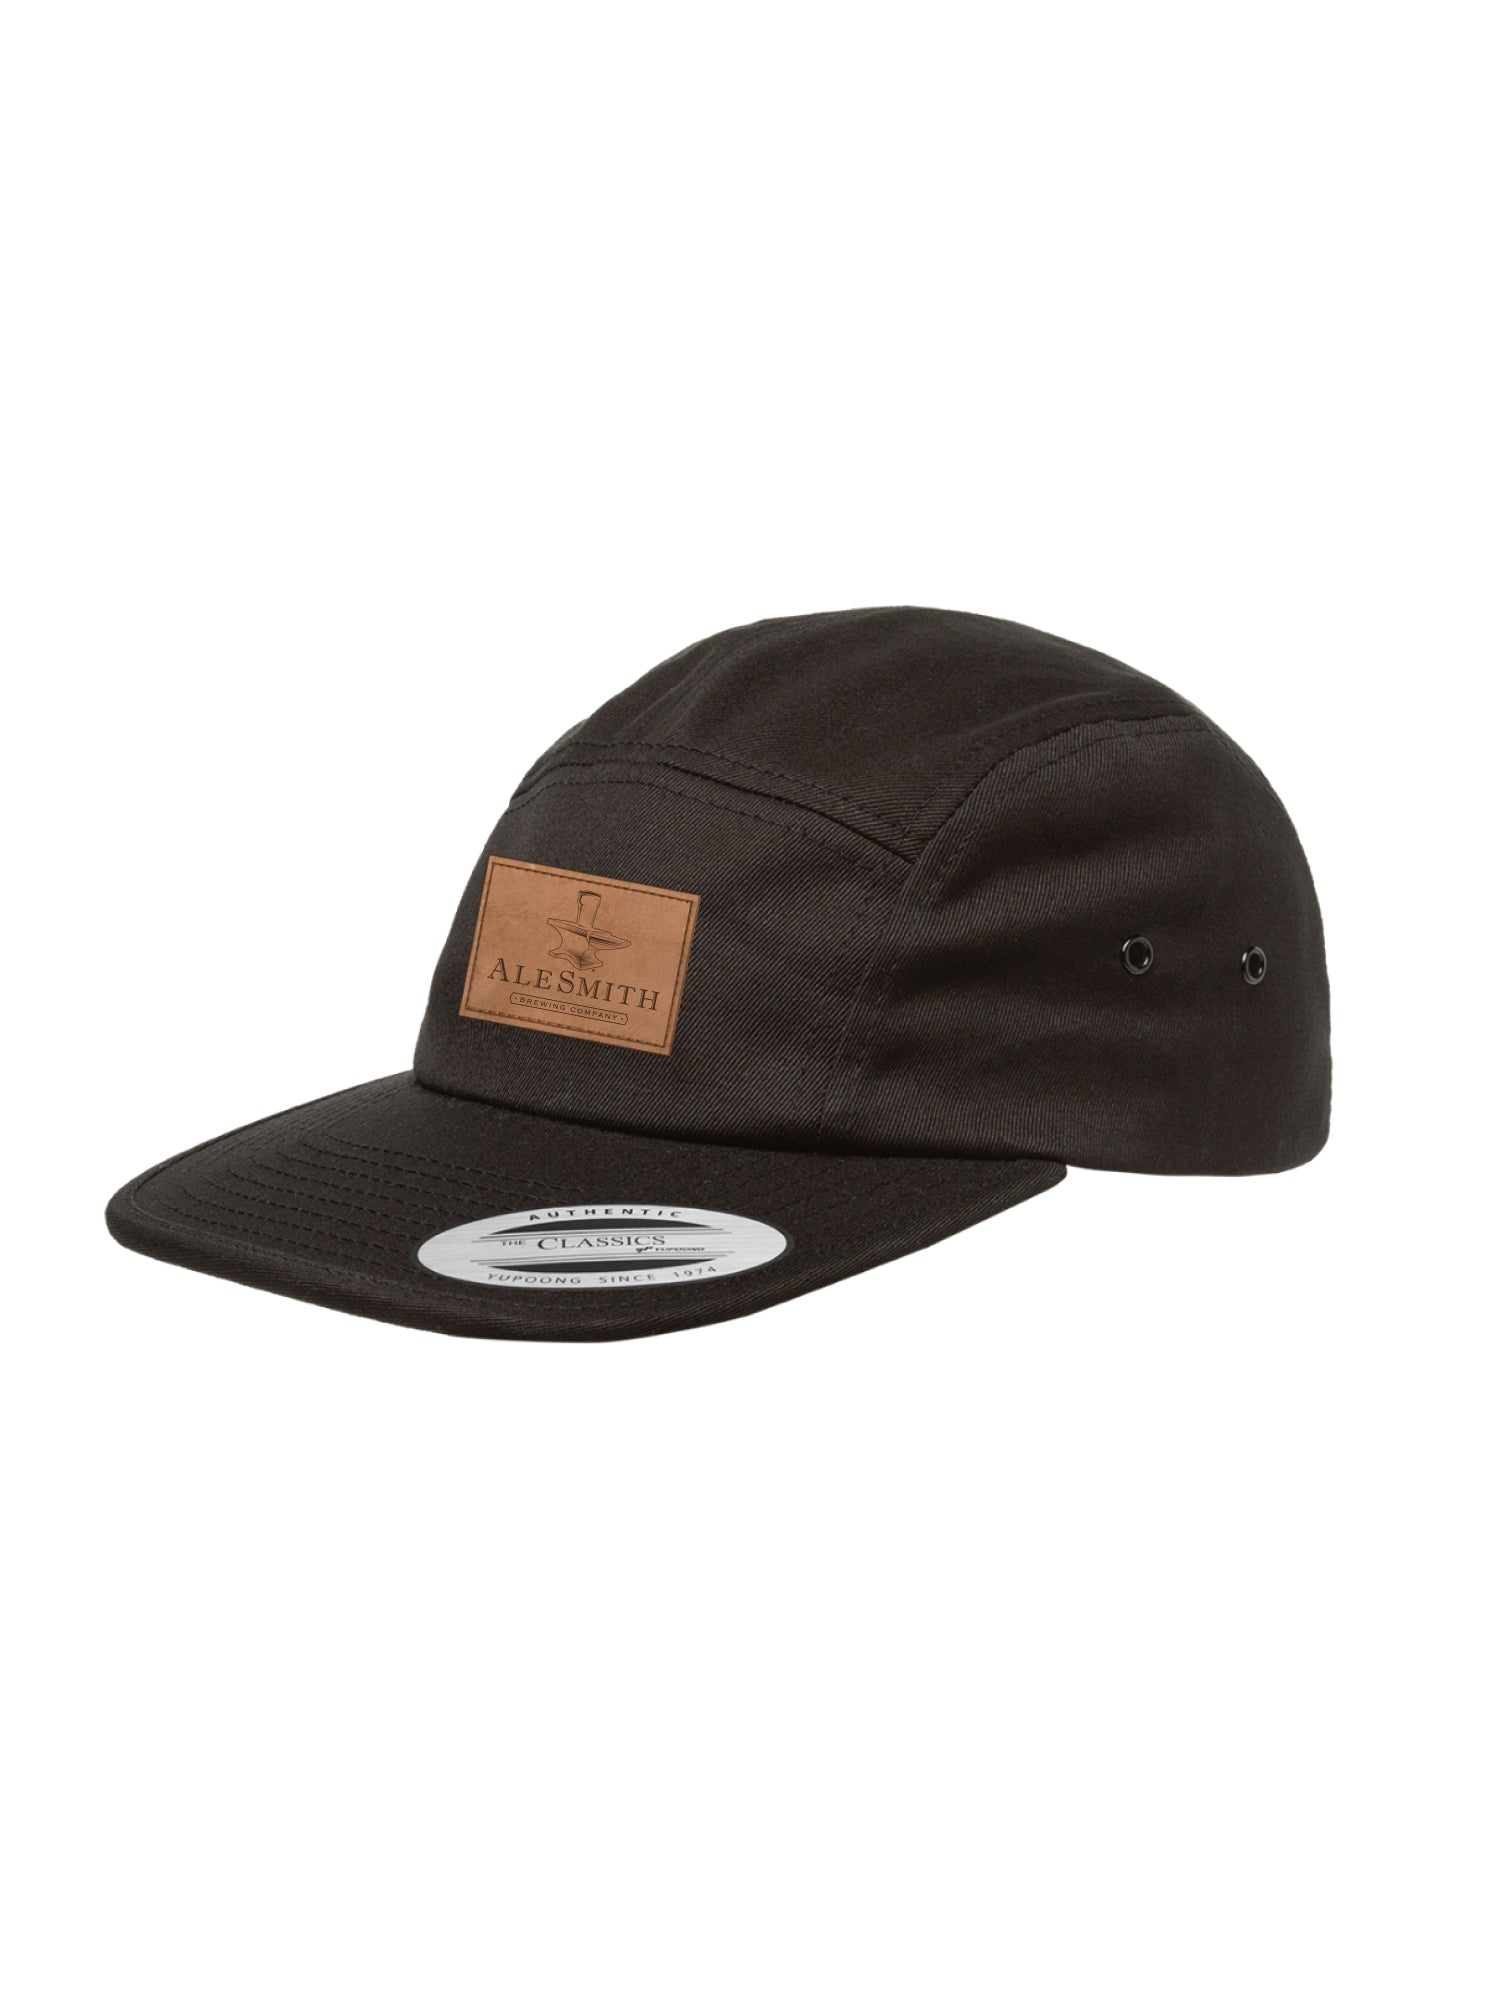 Ale Smith Camper Hat- Brown